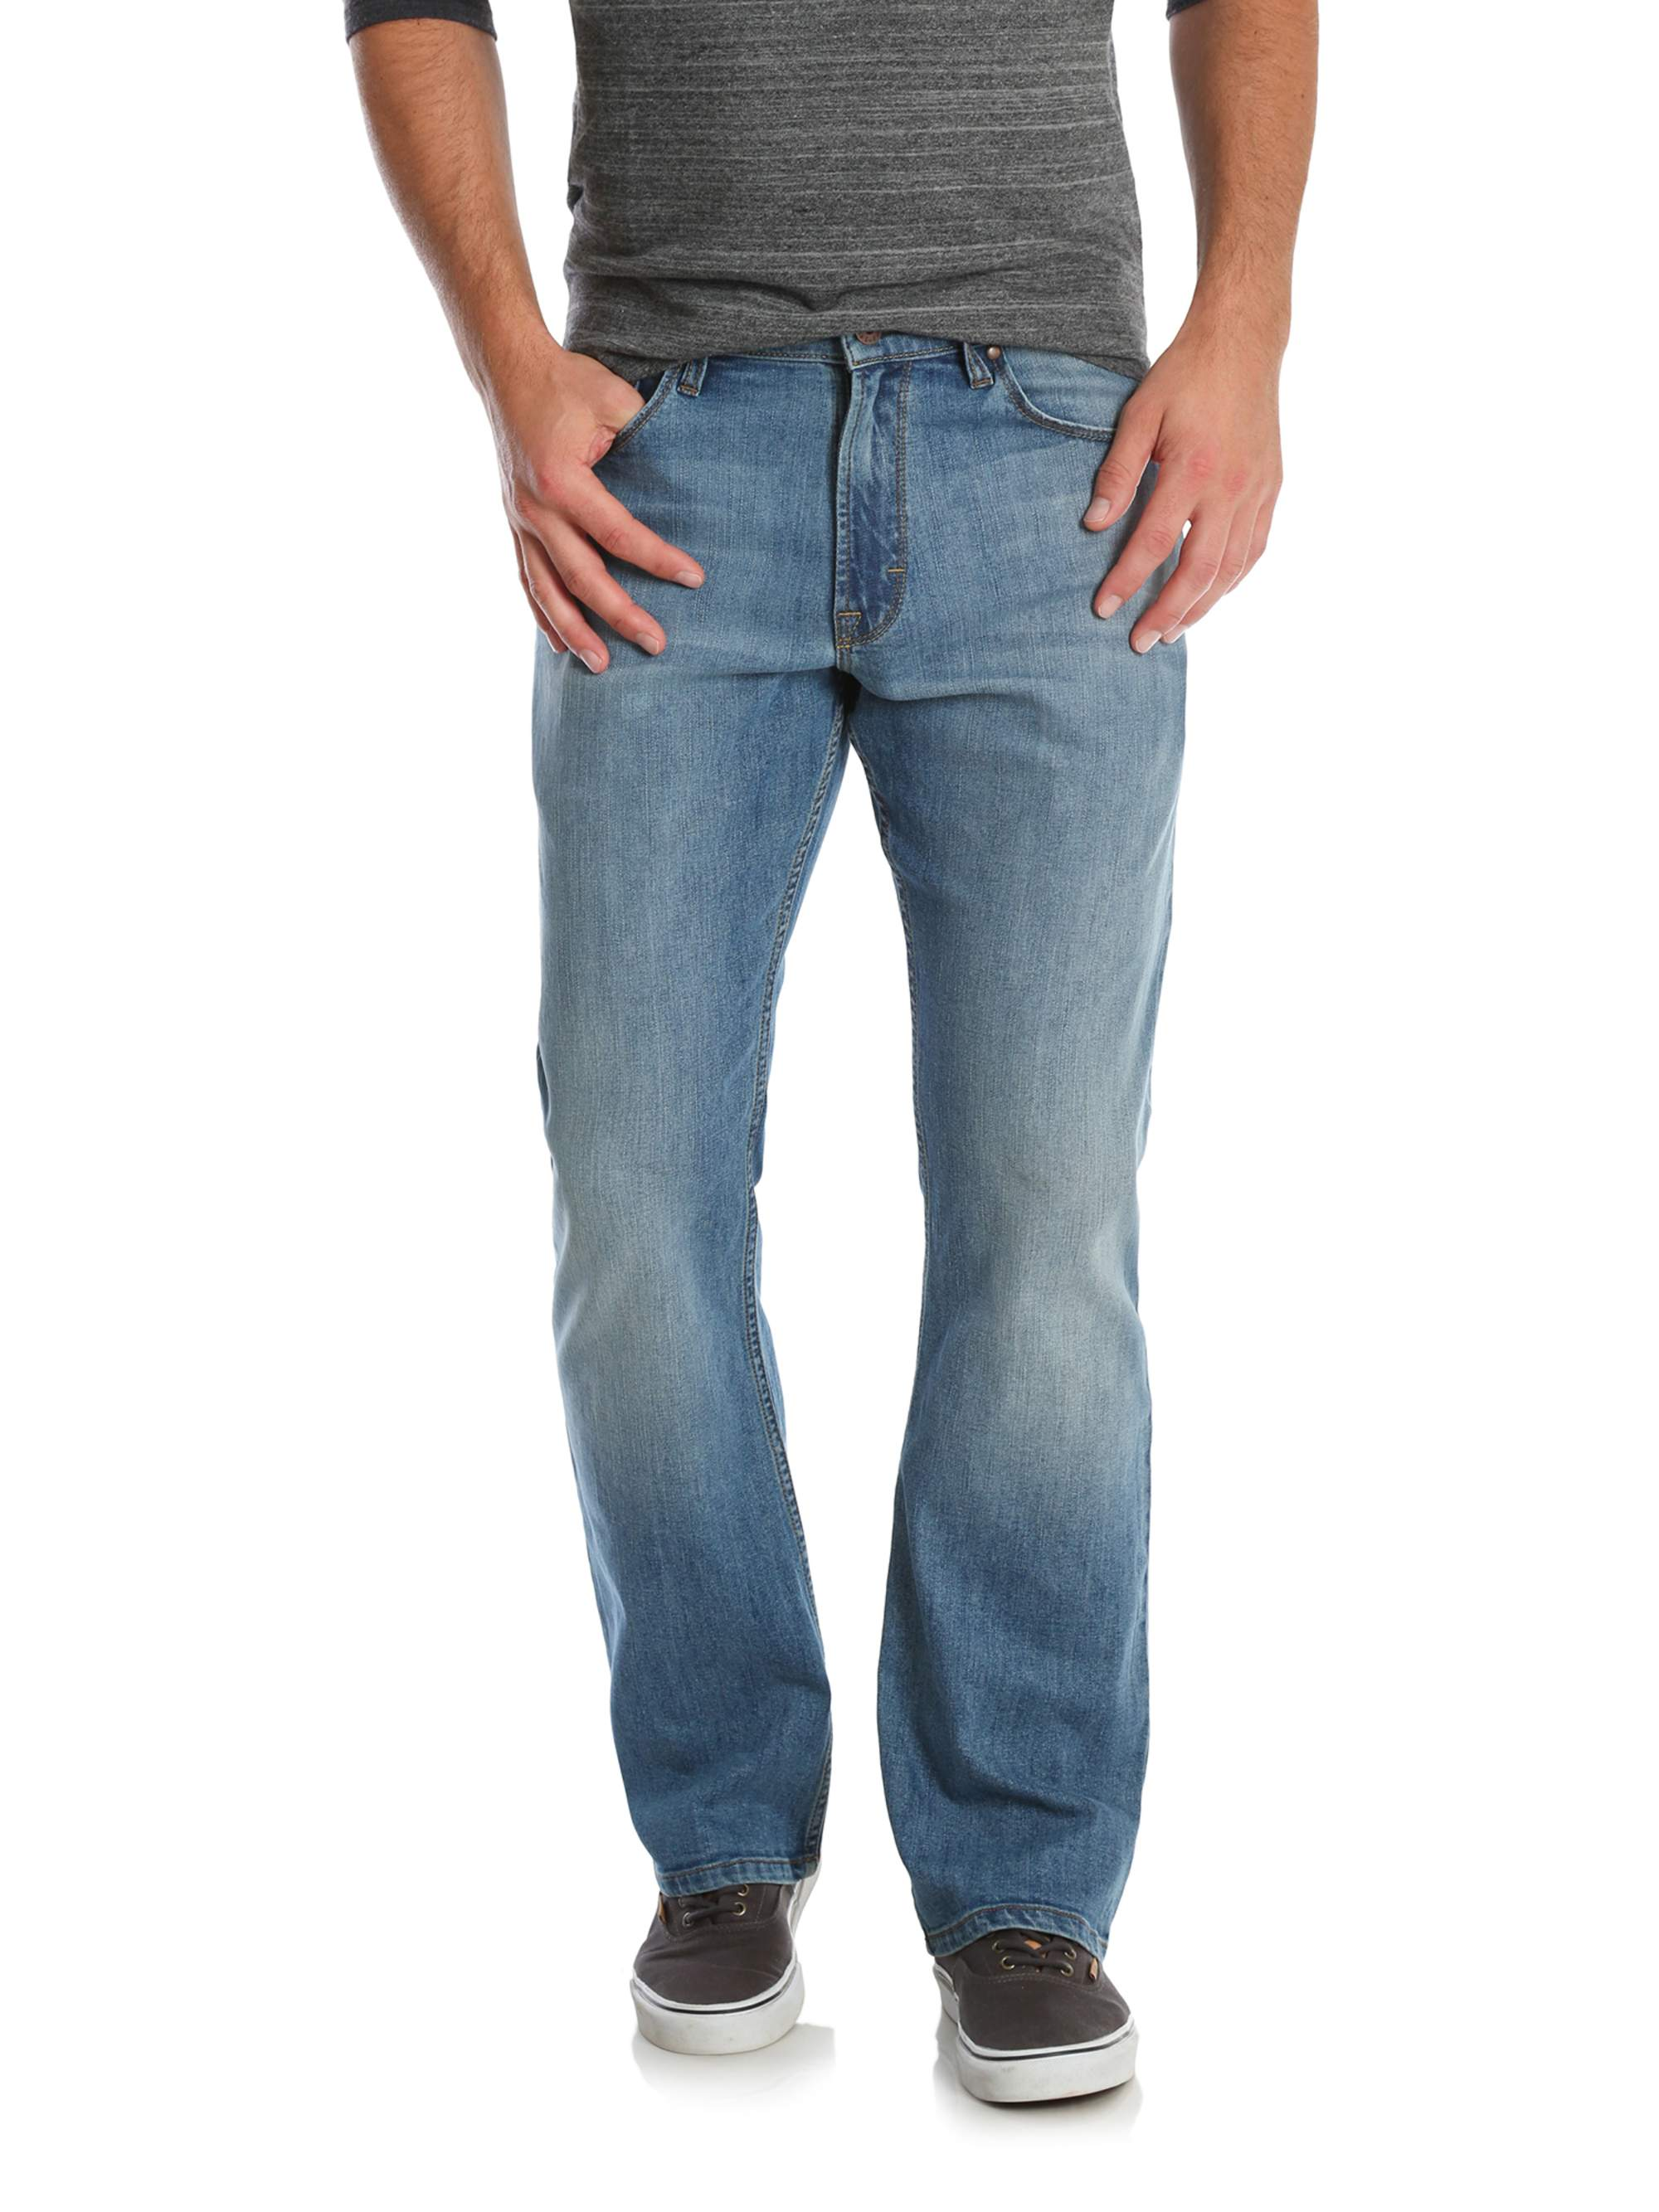 06ffcfa8d6f Wrangler - Men's Relaxed Boot Jean with Stretch - Walmart.com